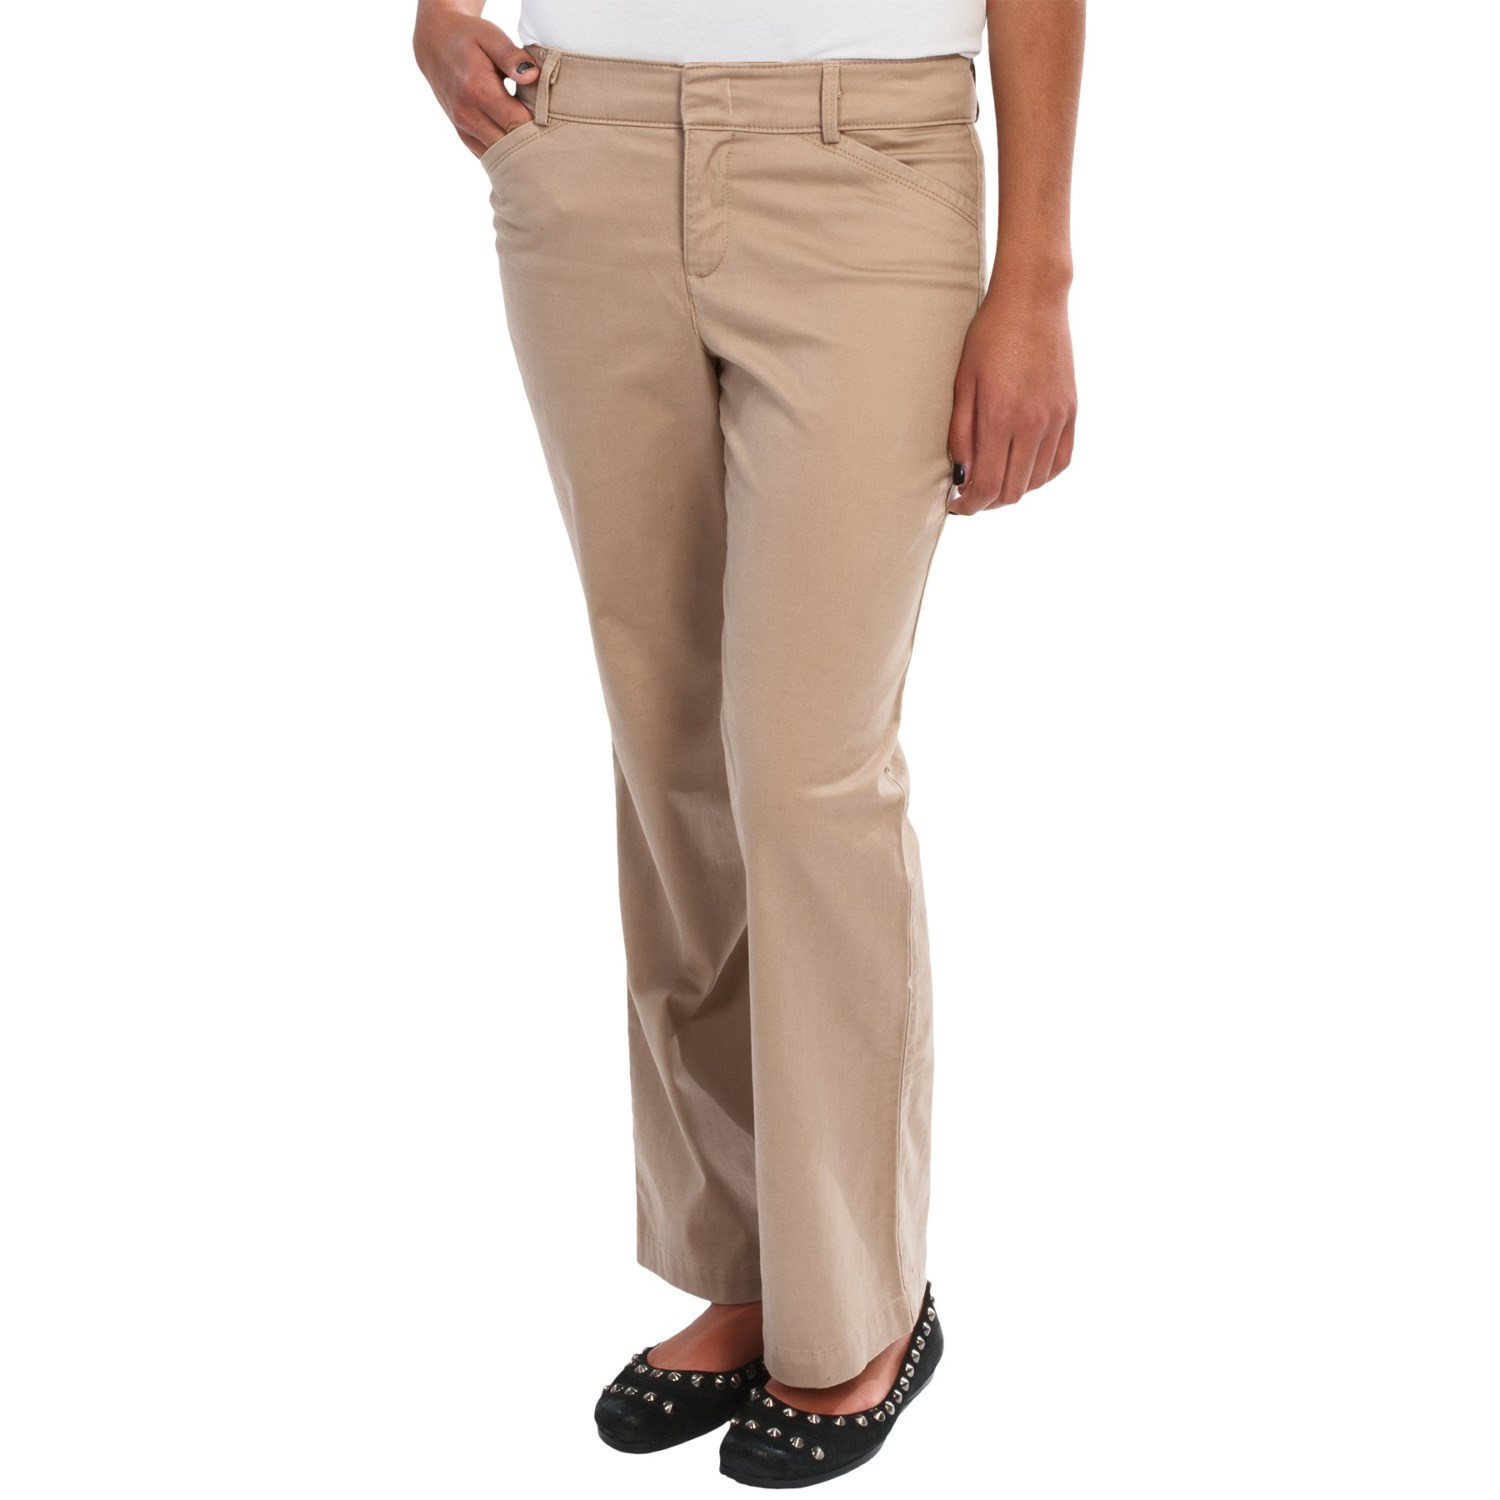 Simple Straight Leg Pants  Stretch Cotton For Women